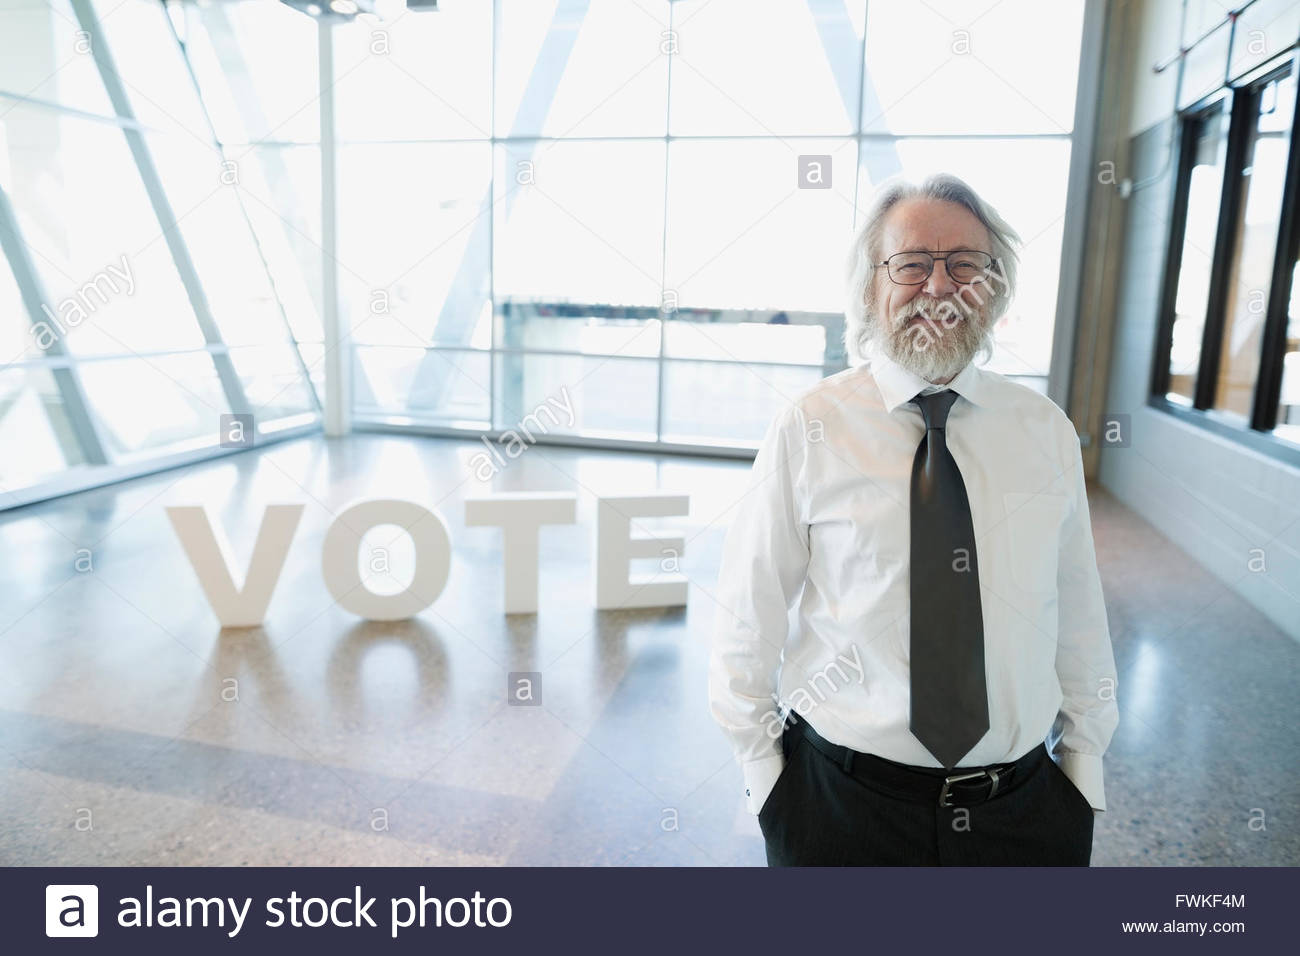 Portrait senior man in front of Vote text - Stock Image